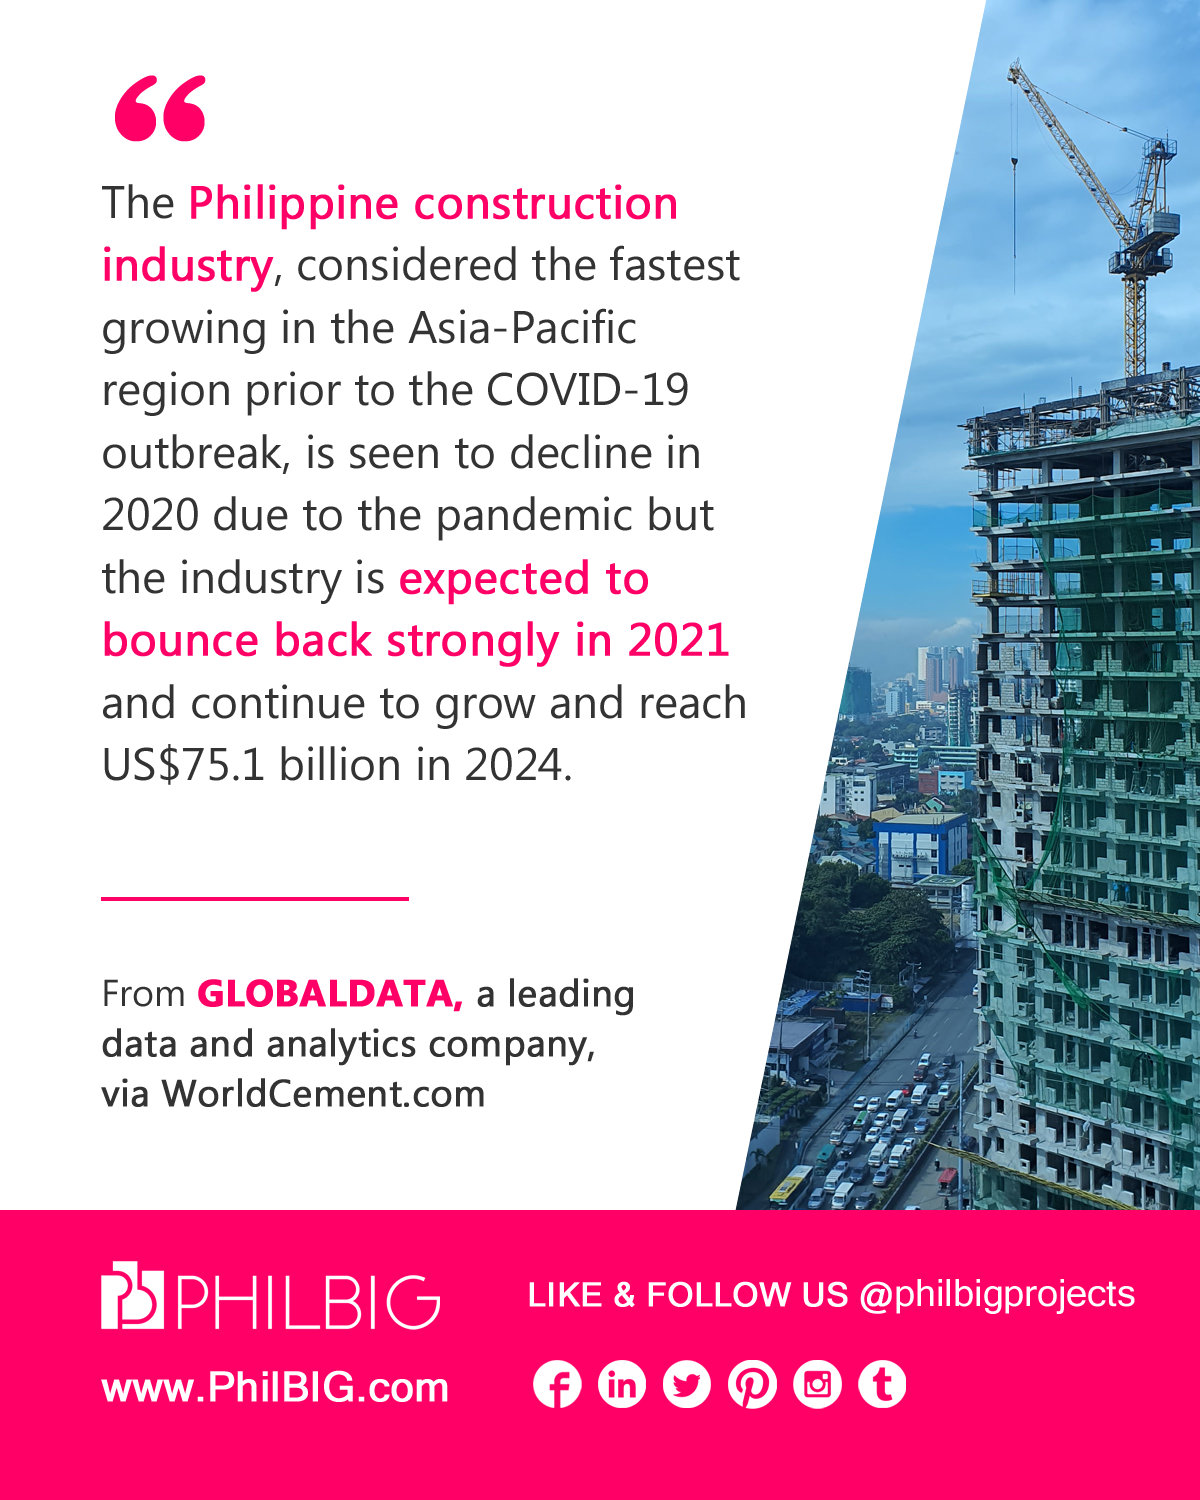 philippine construction news by philbig